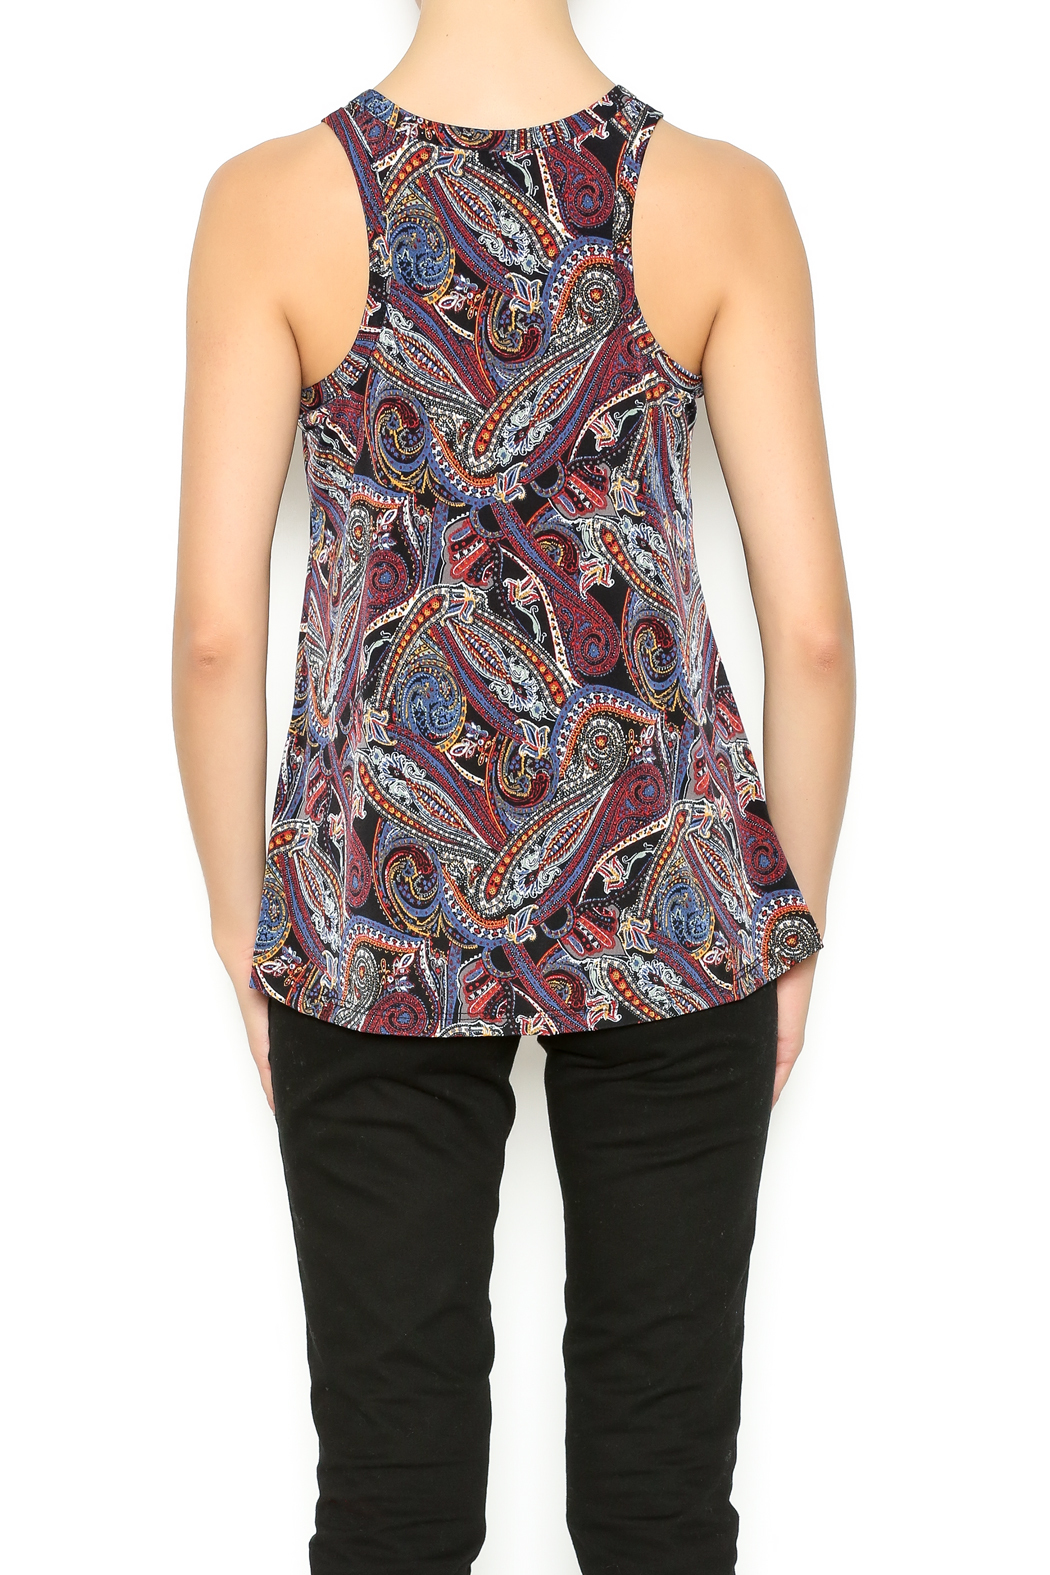 Veronica M Paisley Printed Tank - Back Cropped Image